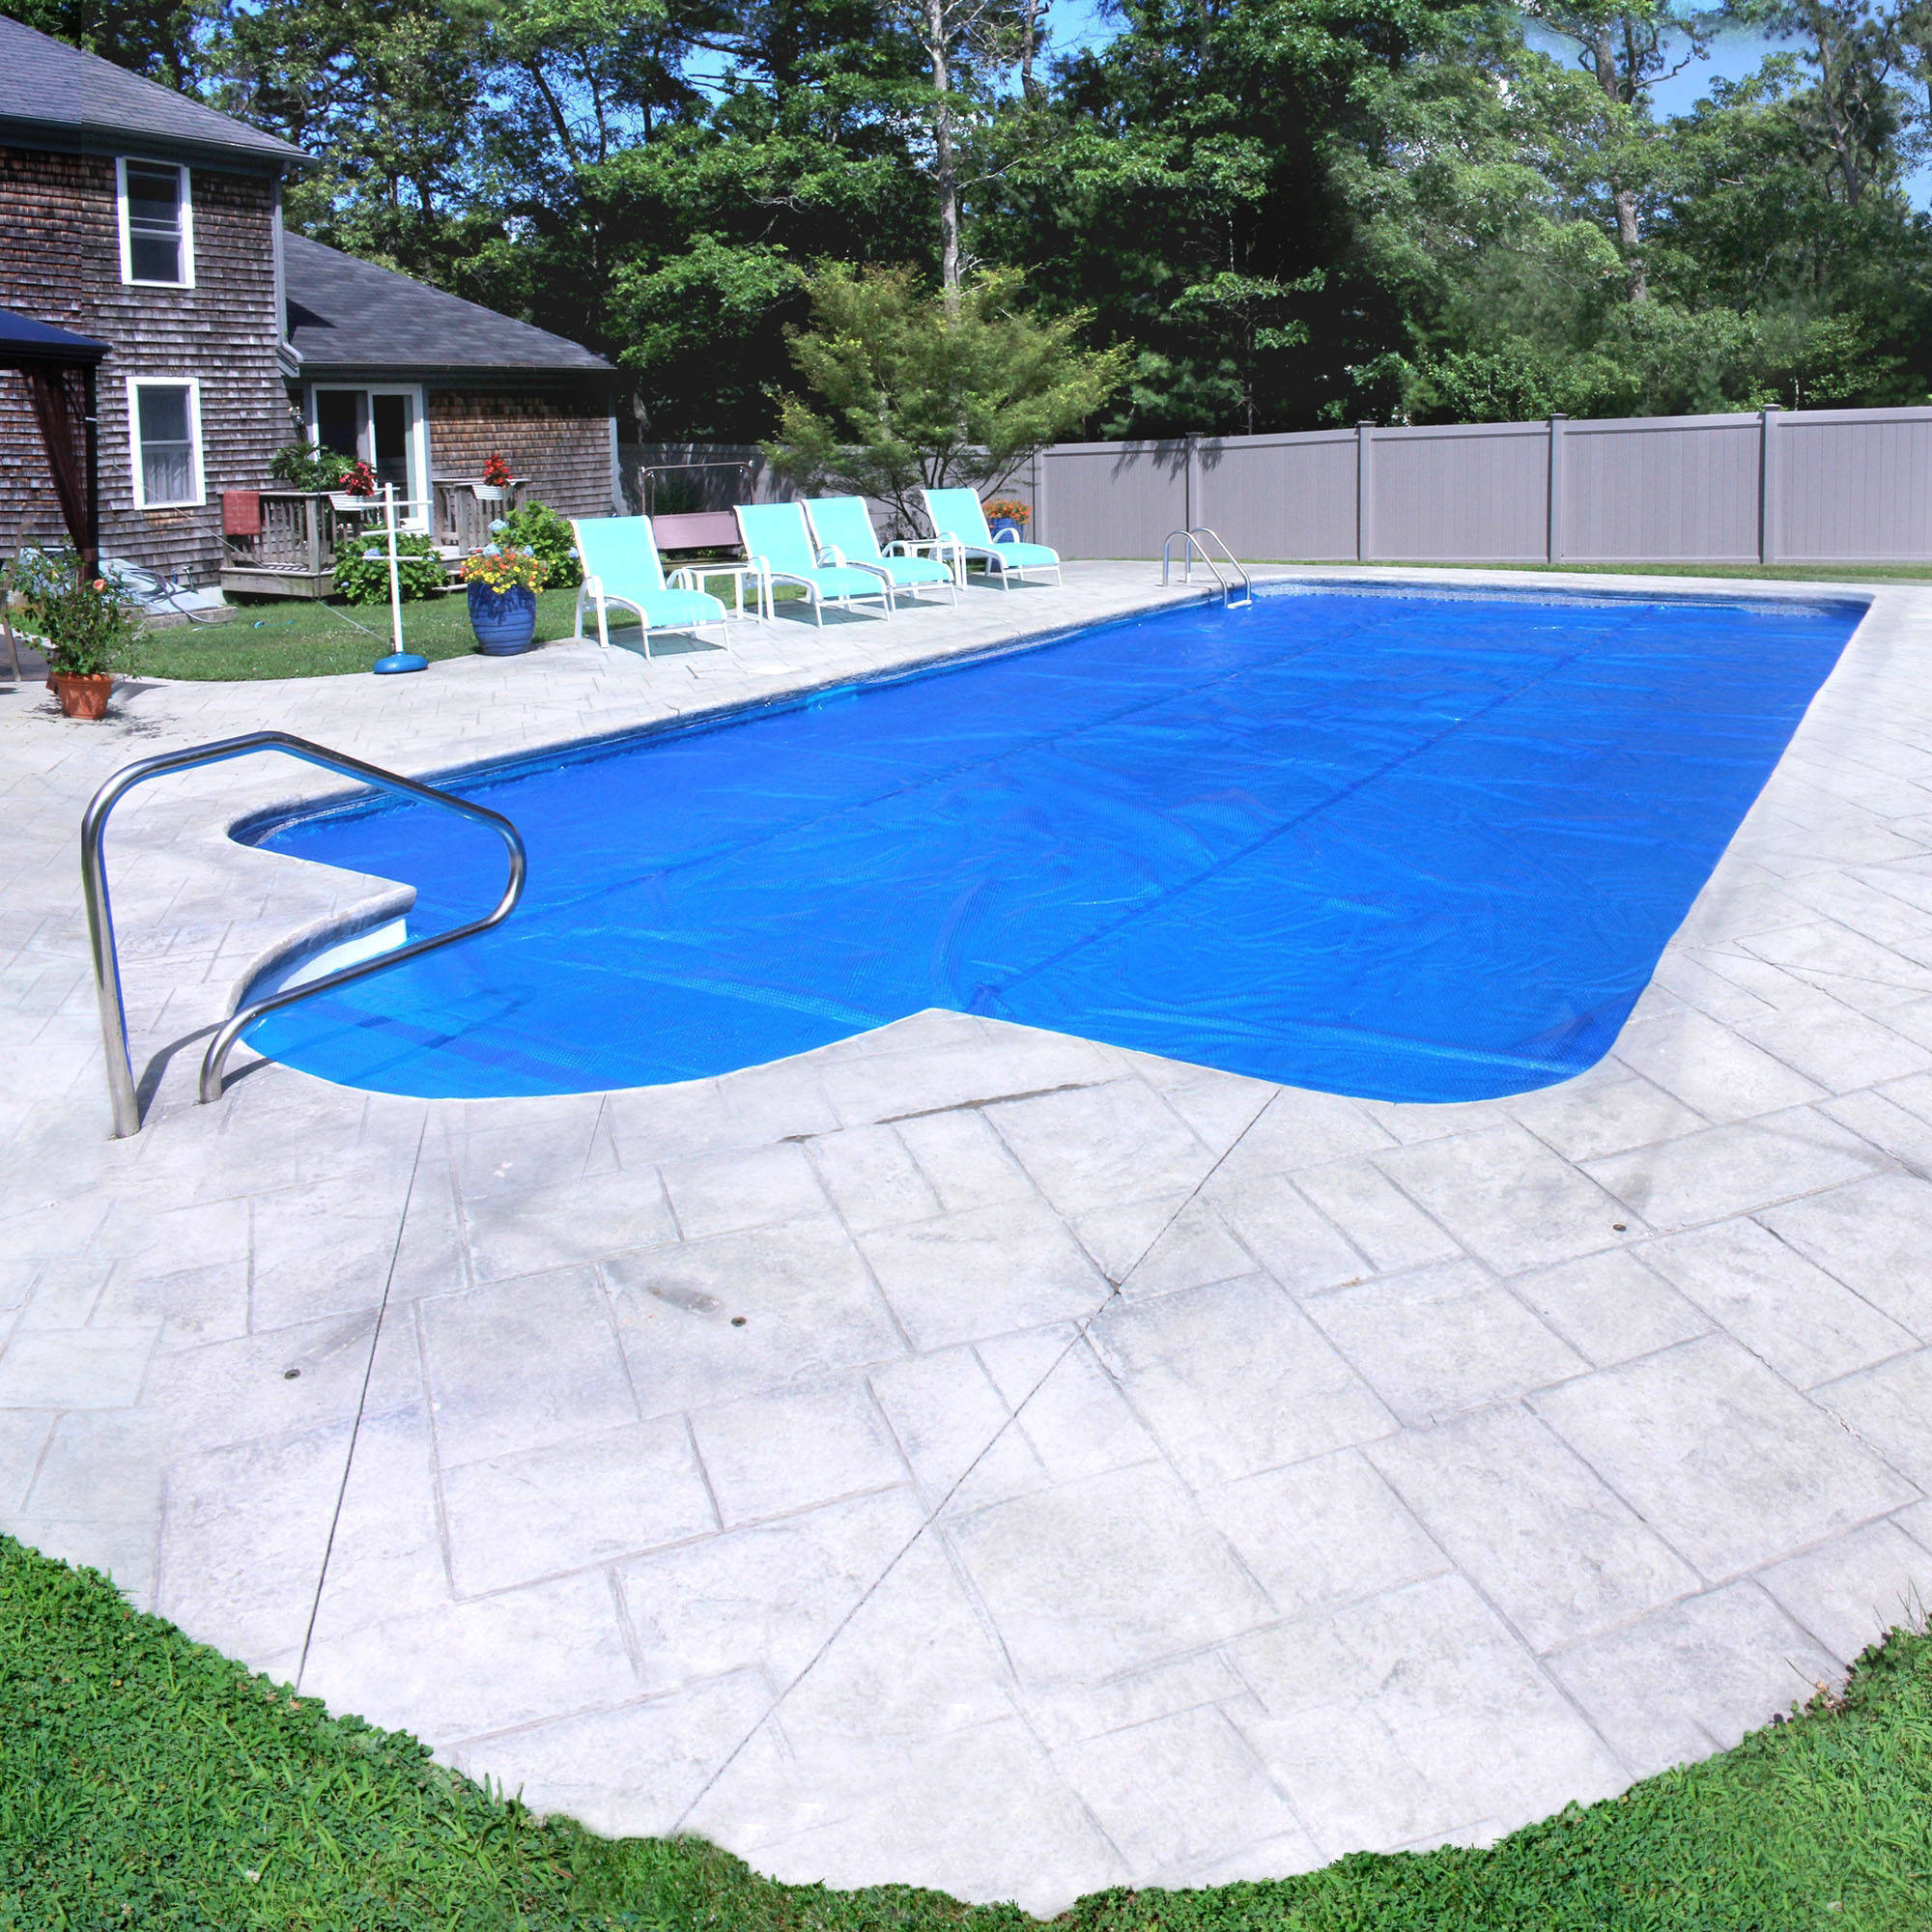 Pool Mate Deluxe 3-Year Blue Solar Blanket for In-Ground Swimming Pool